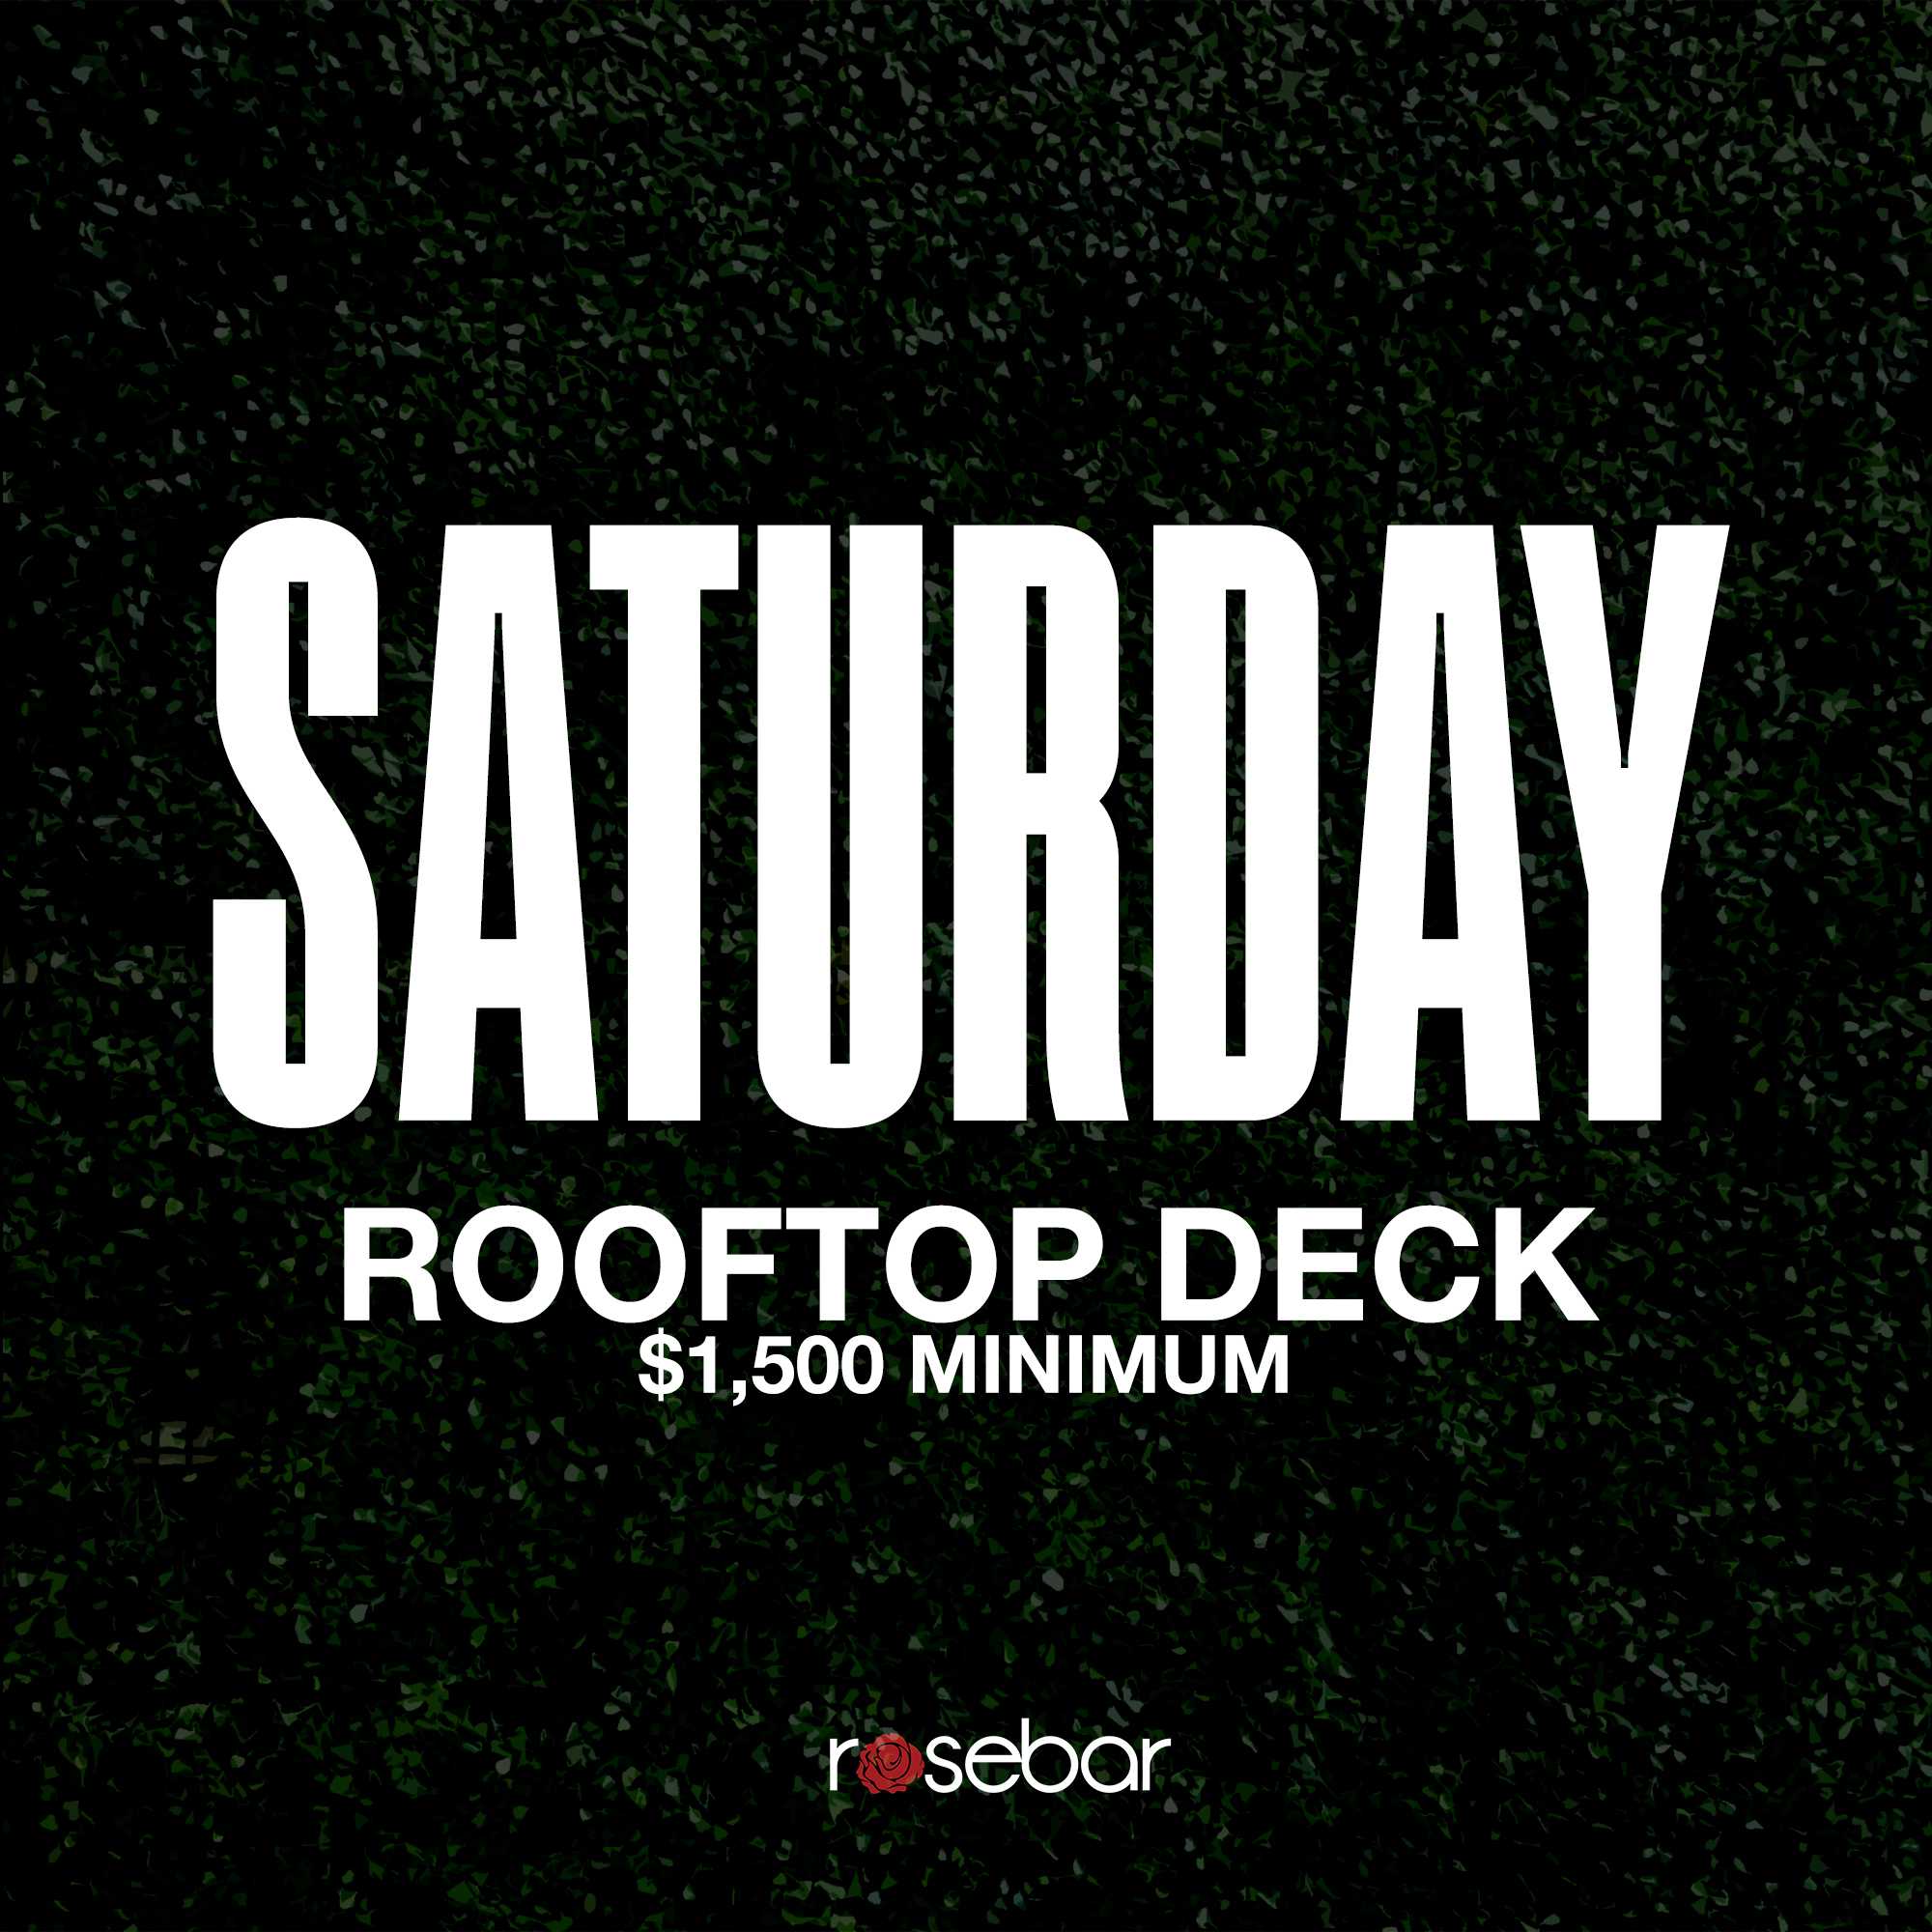 Saturday-DeckOnly.jpg